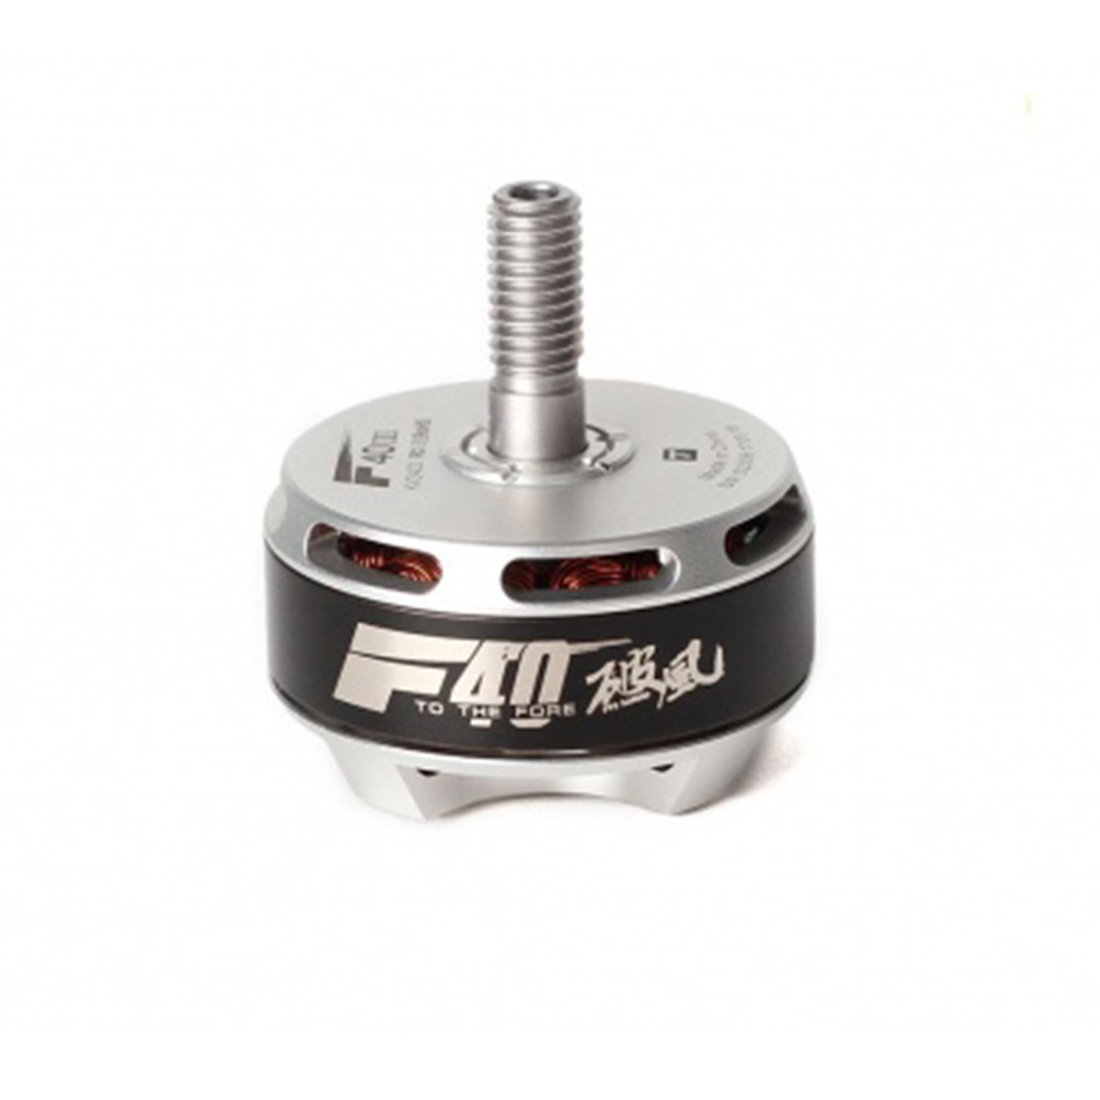 цена на T-Motor F40 III 2306 2400KV 2600KV 2750KV Brushless Motor for 210 220 250 260 RC Models Multicopter Quadcopter FPV Drones